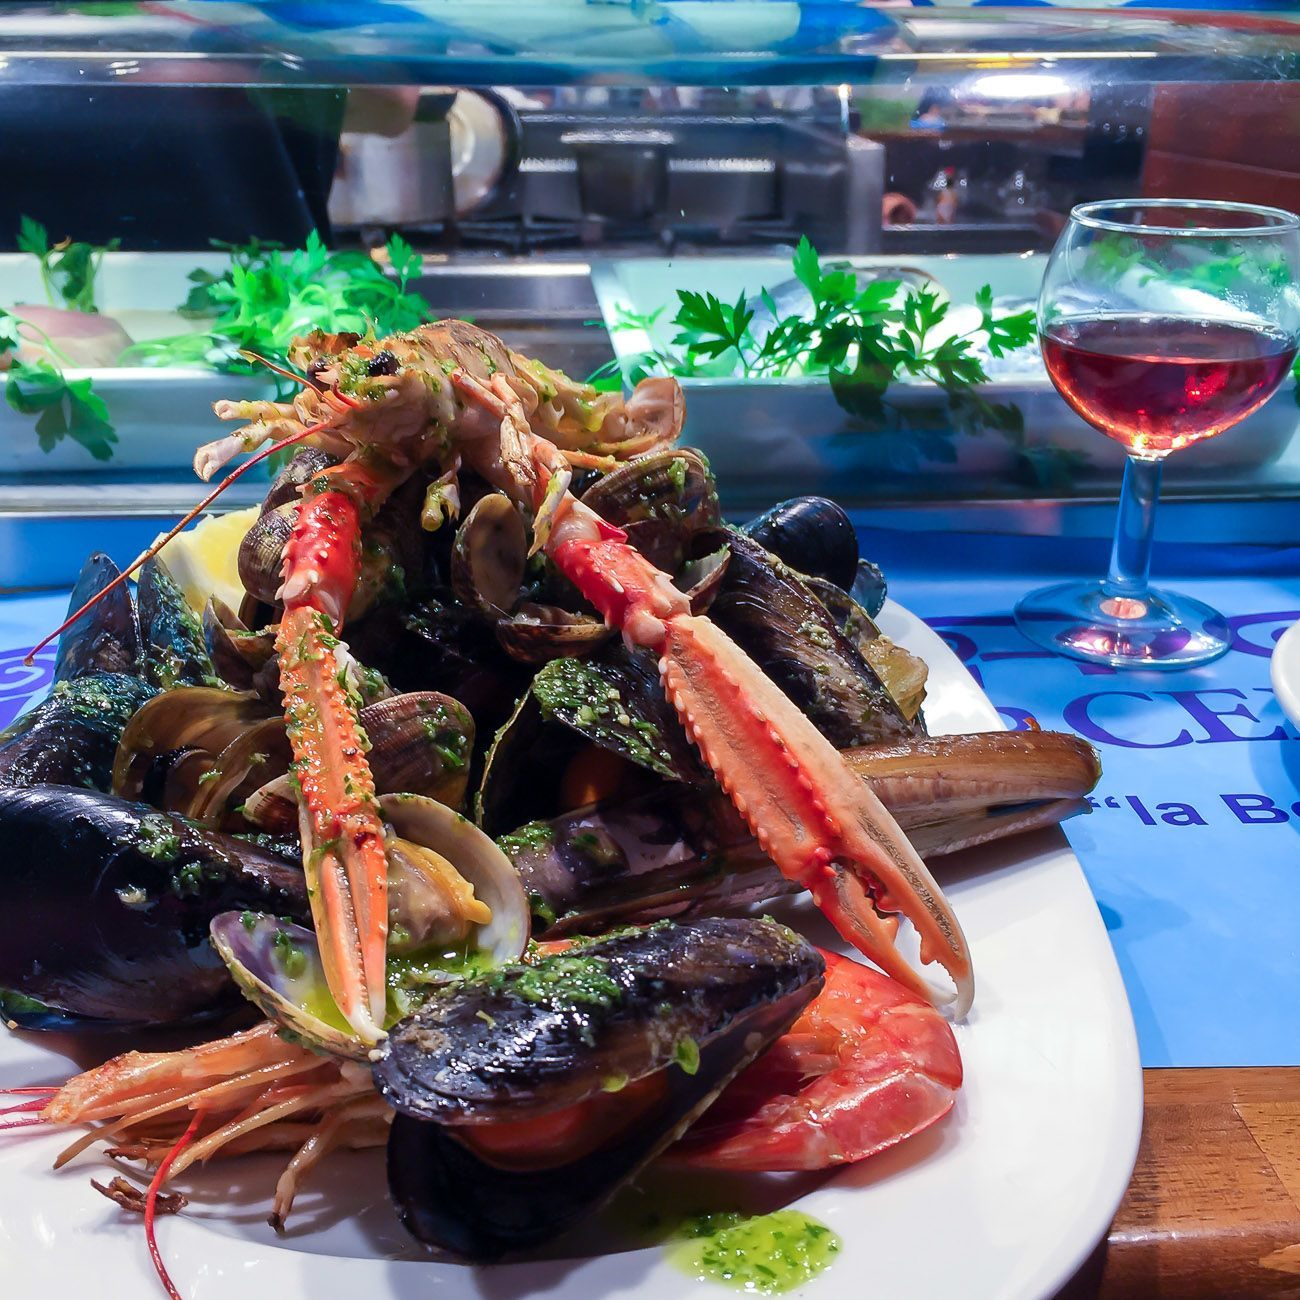 A giant seafood plate at BarCentral in La Boqueria Market in Barcelona